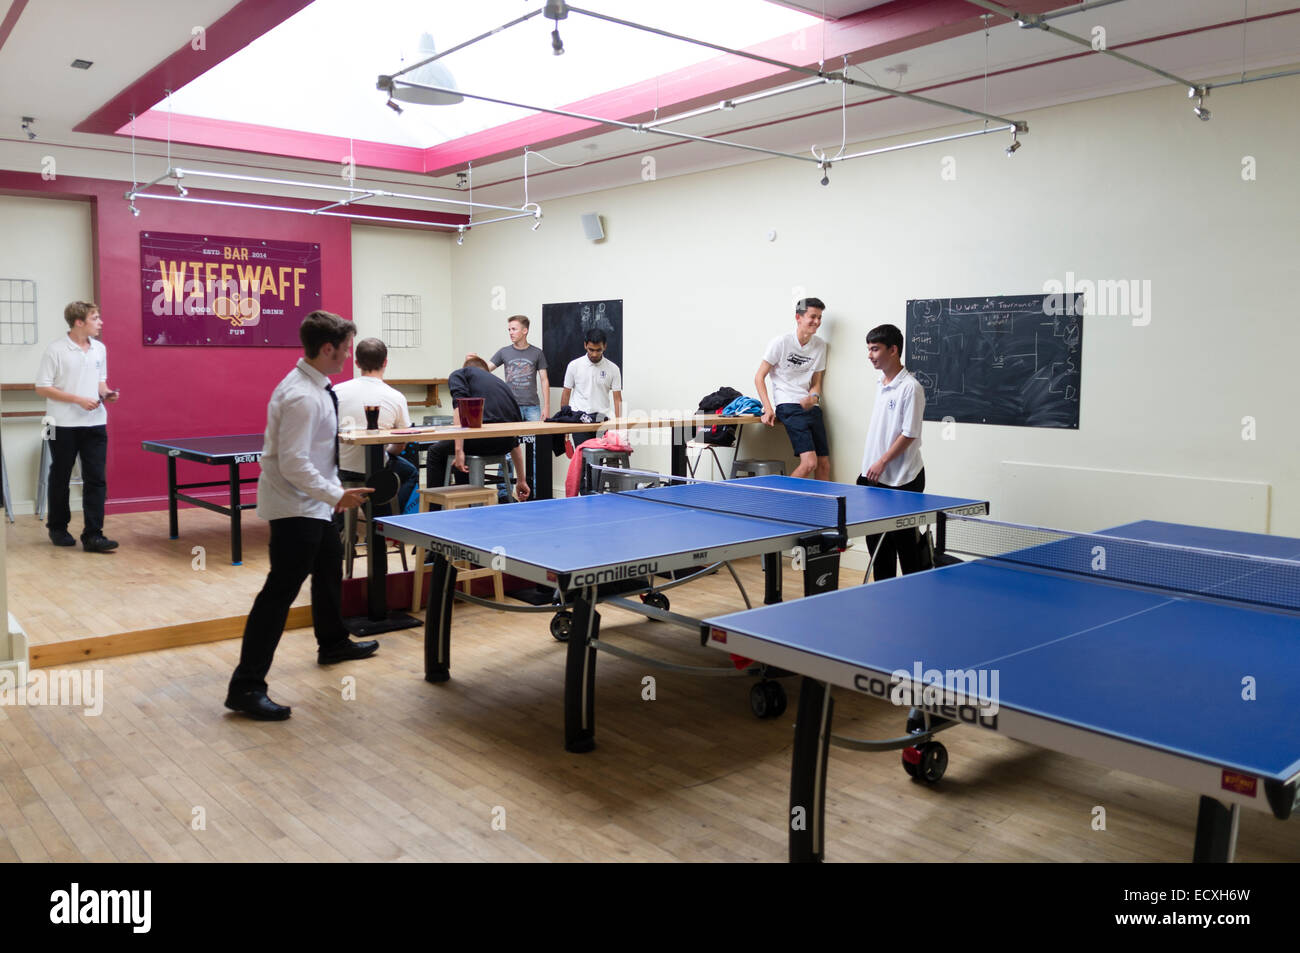 Teenagers Playing Table Tennis In And After School Club At The Wiff Stock Photo Alamy